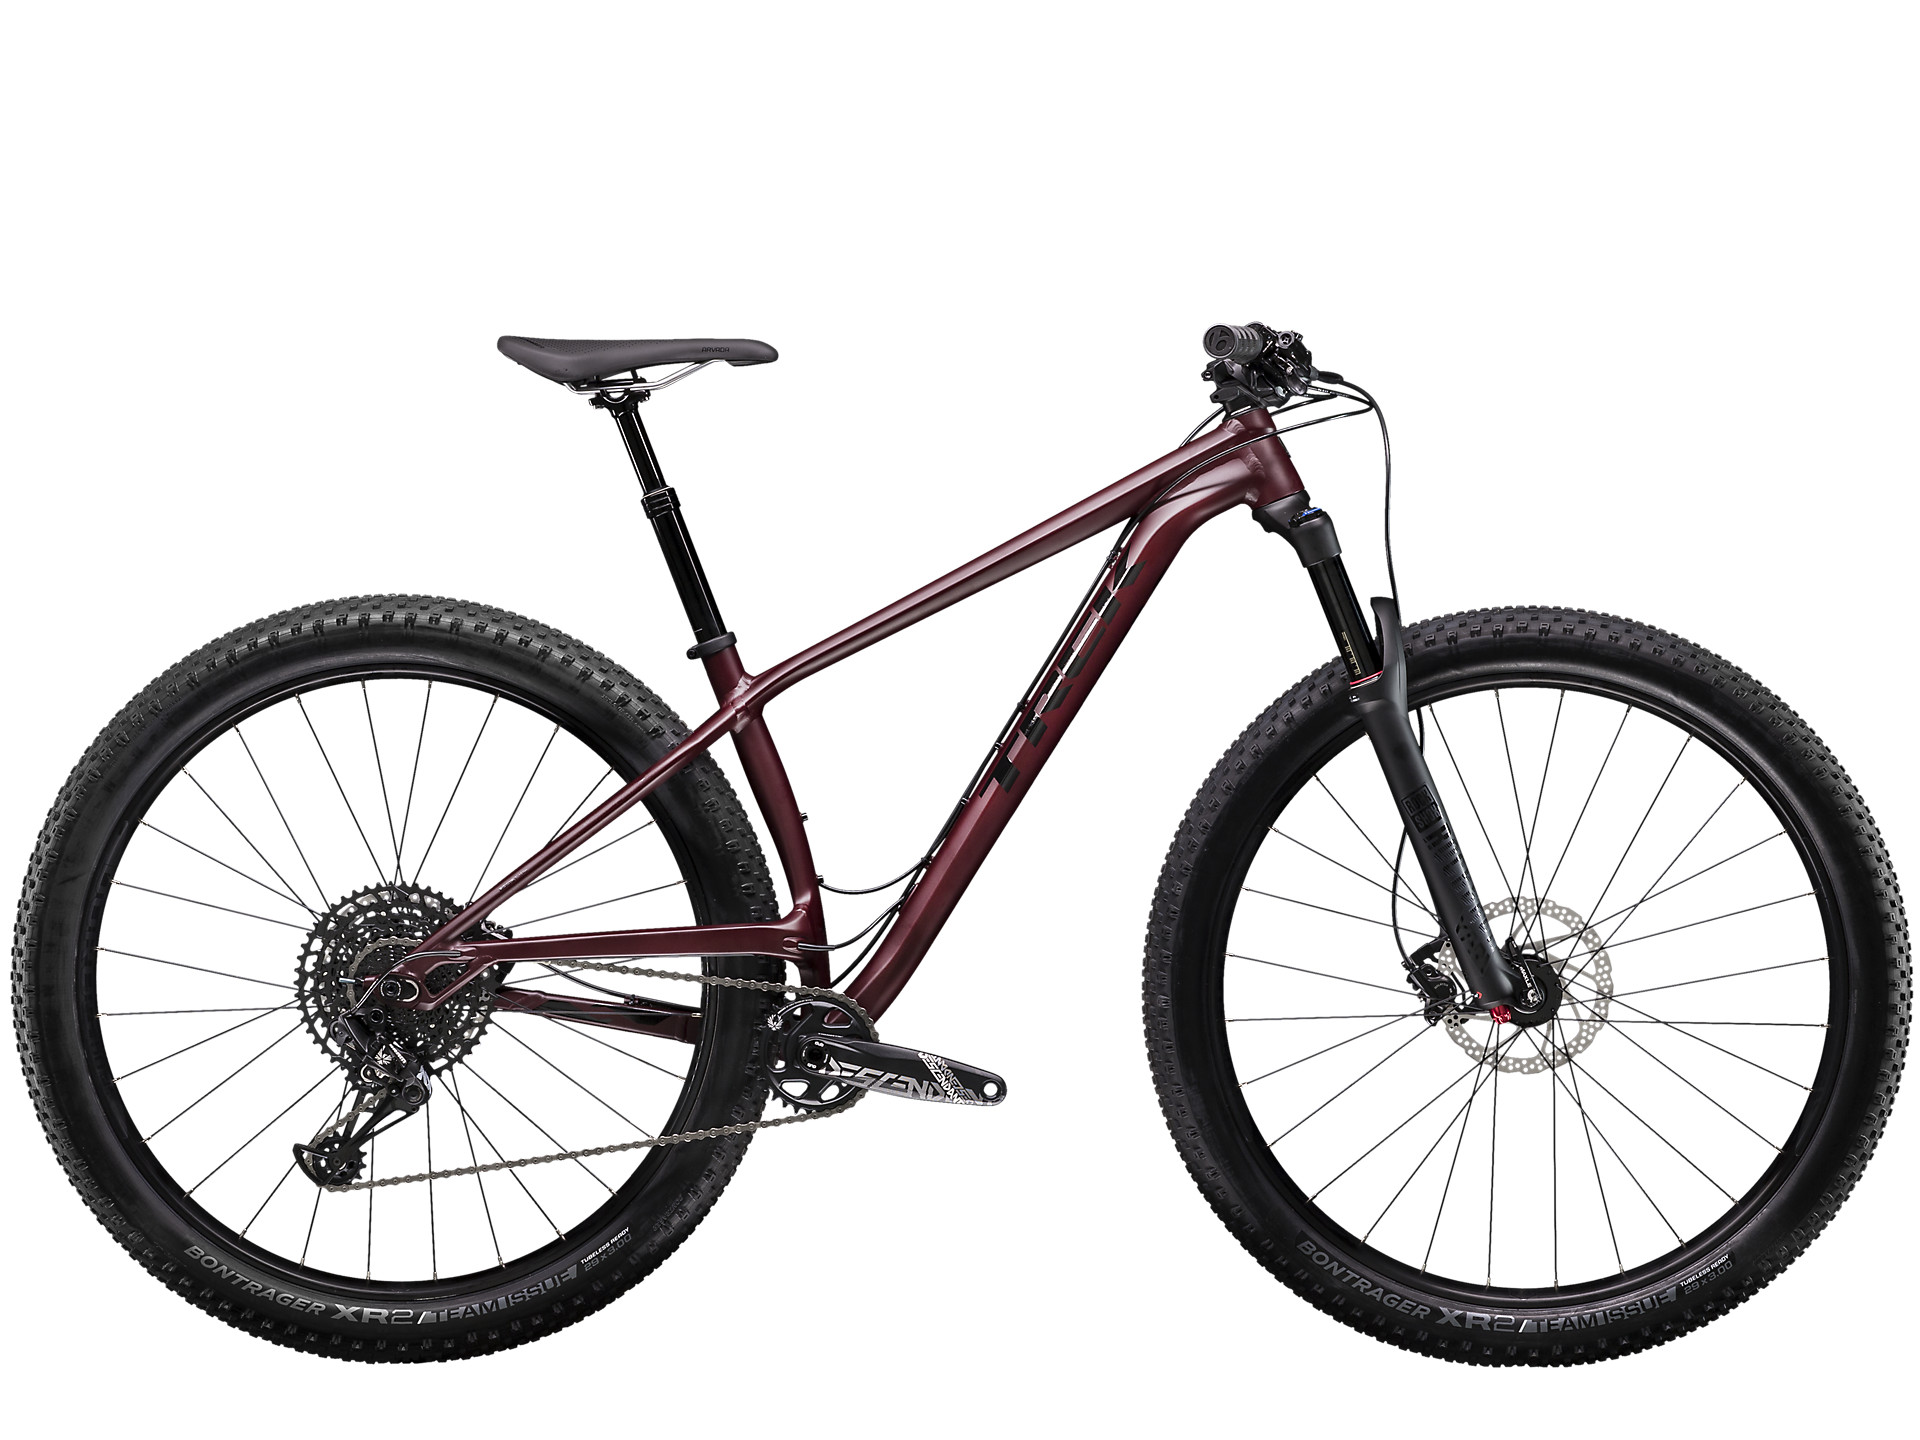 Stranglehold Sliding Hanger Dropout 16 17 Farley Stache 2015 Geared SS Superfly